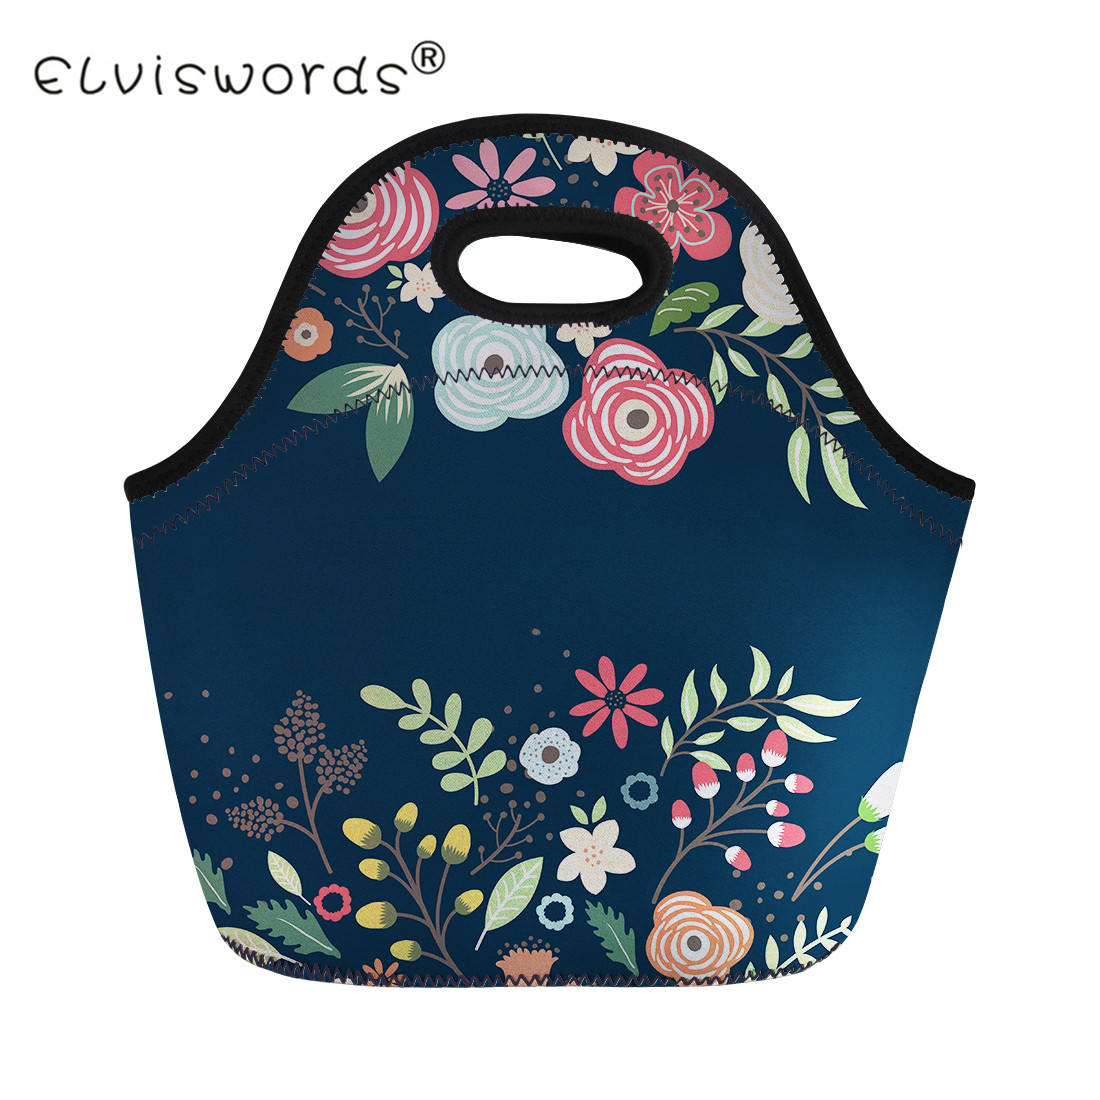 ELVISWORDS Vintage Children Lunch Bags Flower Lunch Box for Kids Leaves Plant Floral Print Women Thermal Lunch Bag Tote Storage